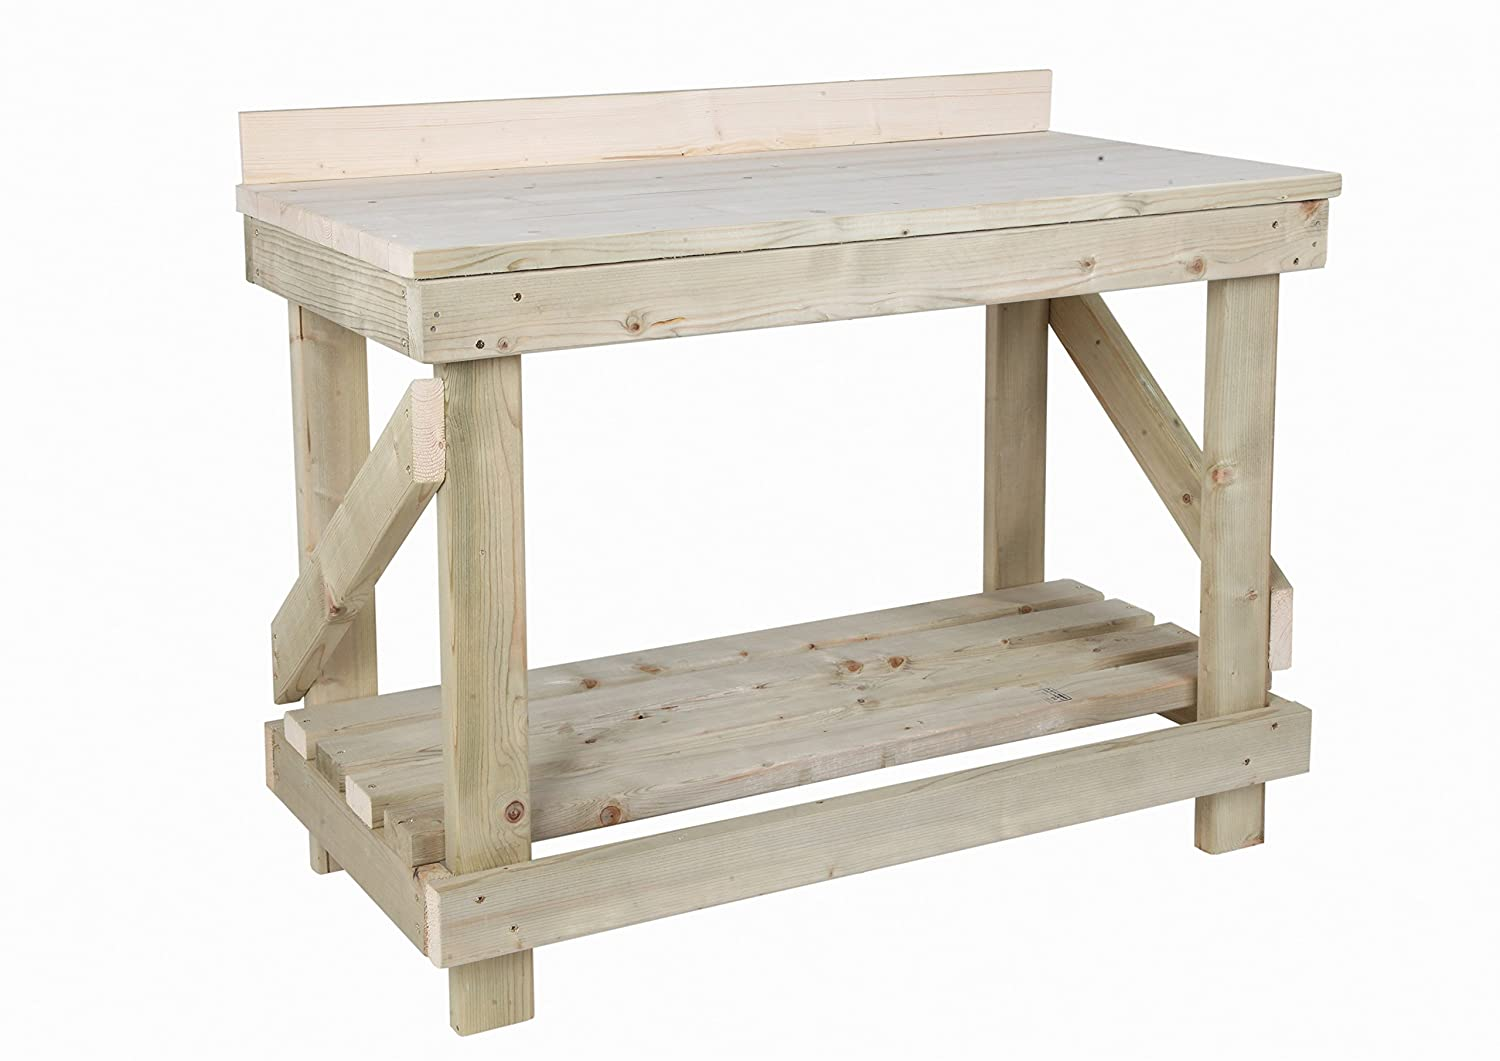 Solid Wooden Worktop MC TIMBER PRODUCTS LTD 3ft Heavy Duty Work bench With Rear Upstand NEW!!